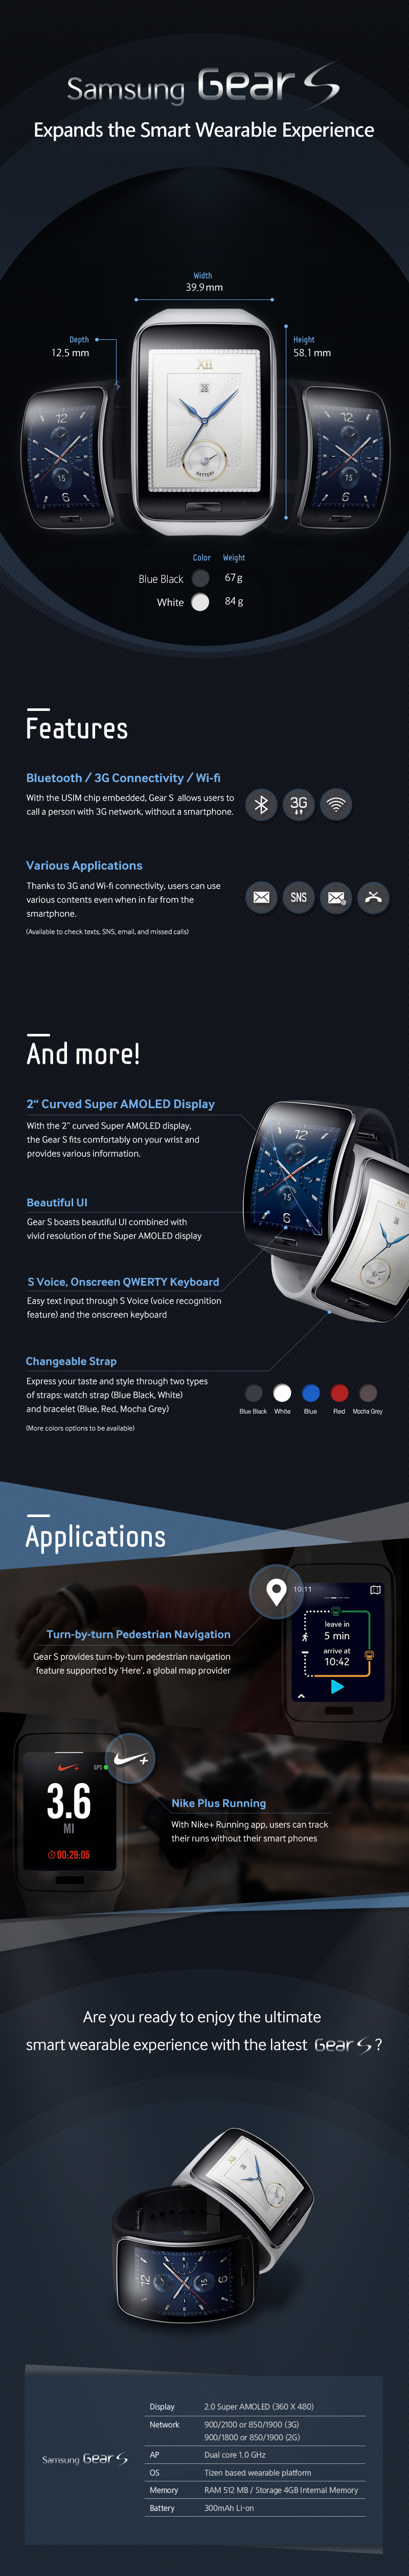 Gear S Infographic